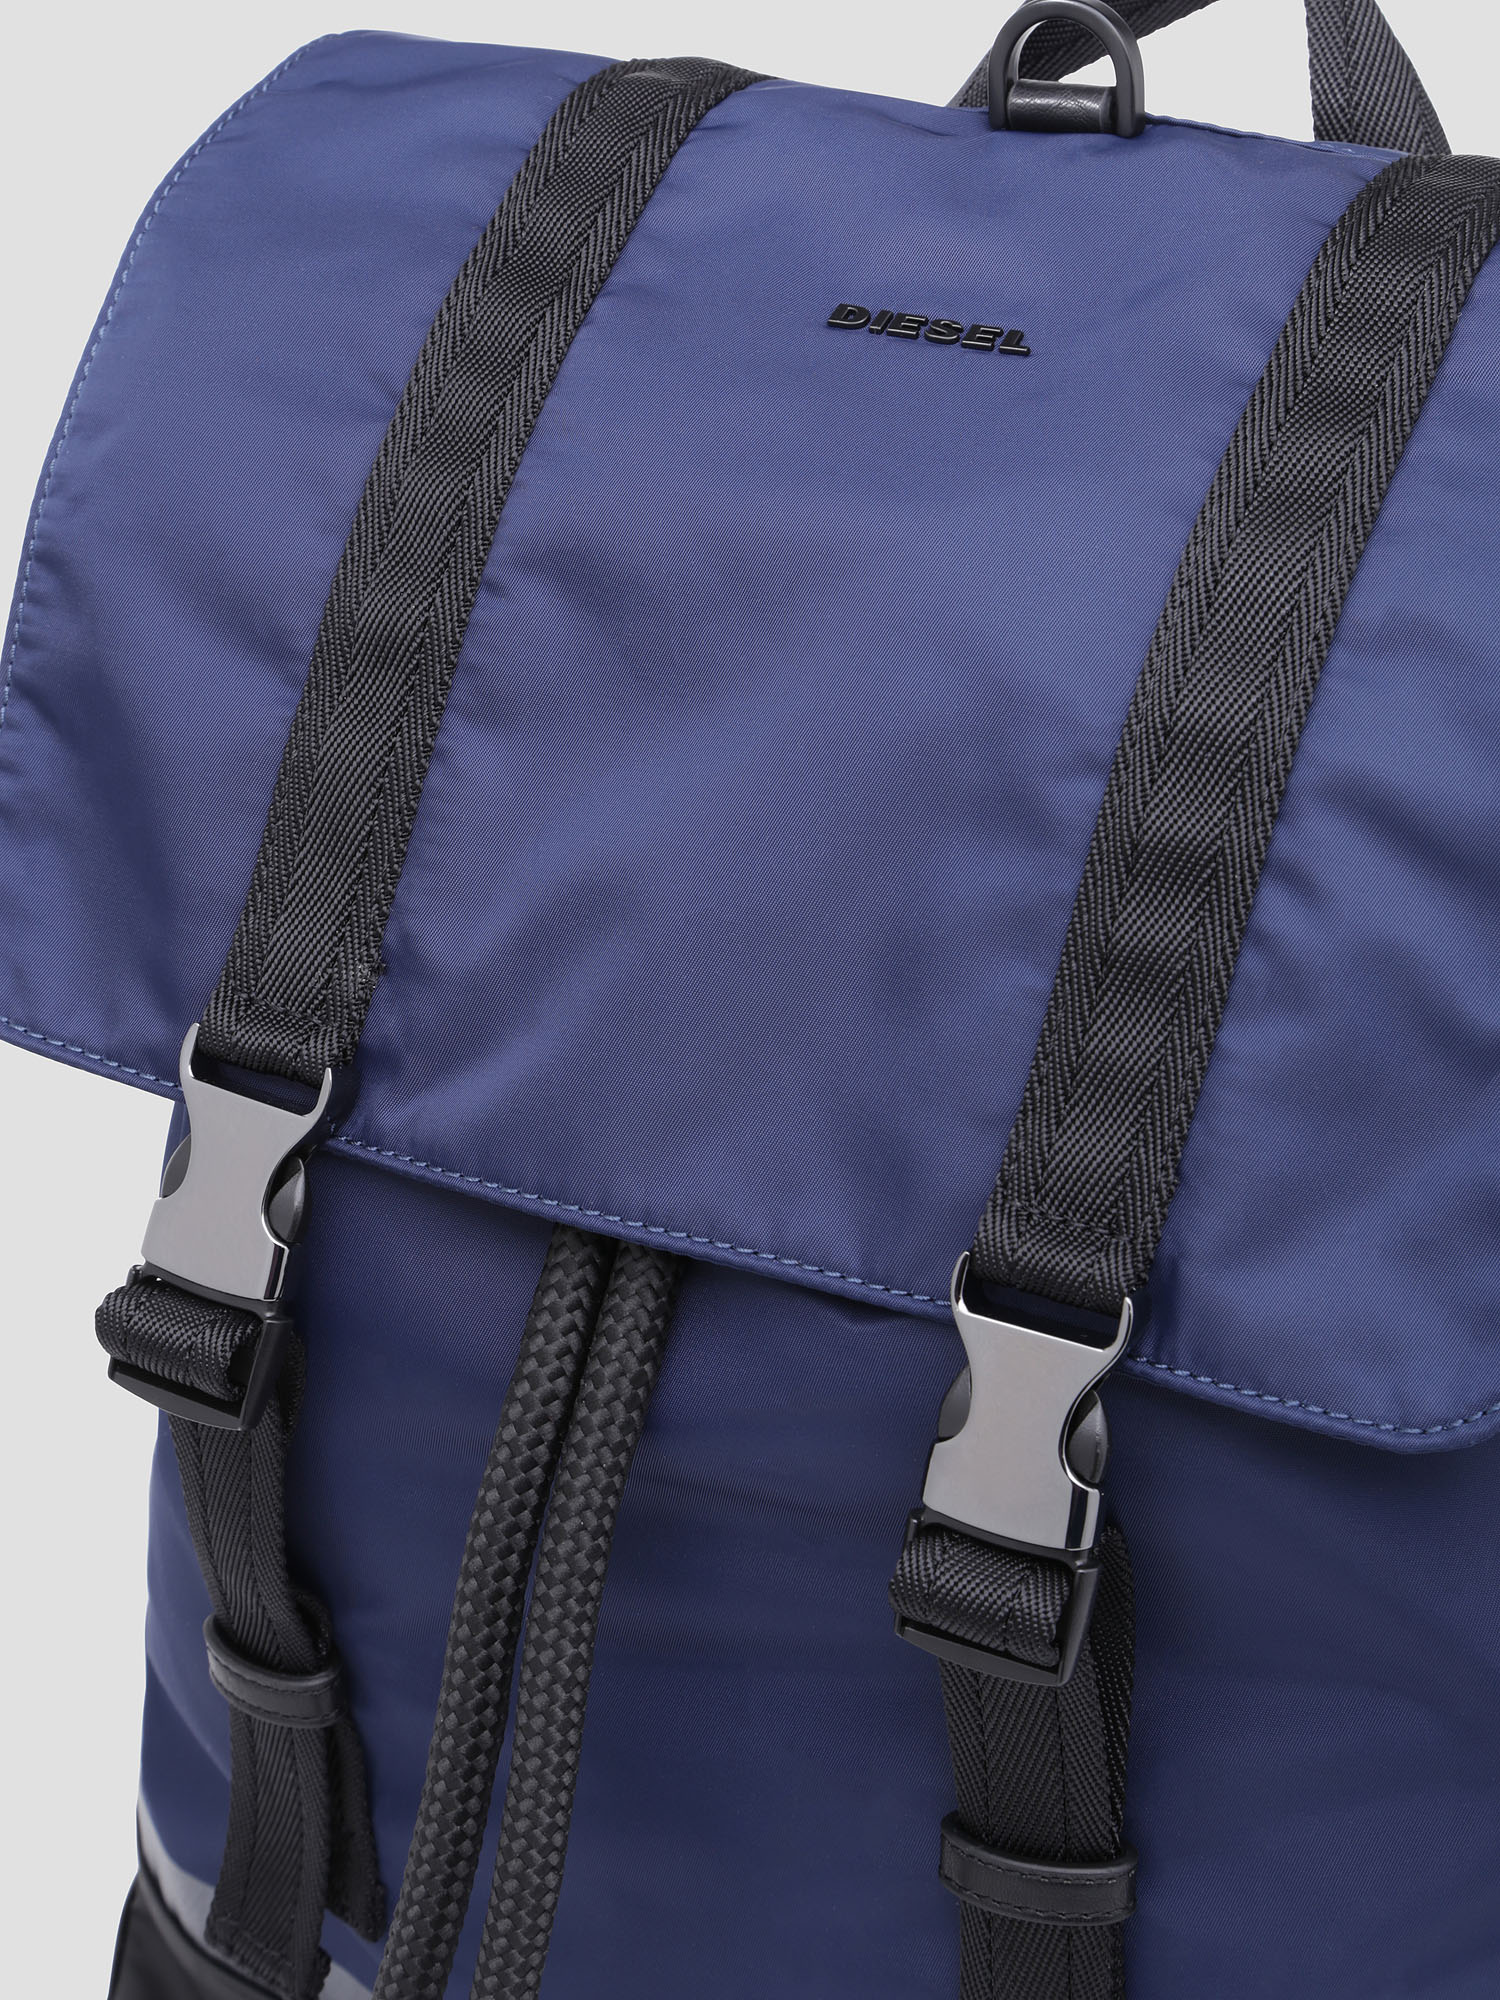 Diesel - VOLPAGO BACK,  - Backpacks - Image 4